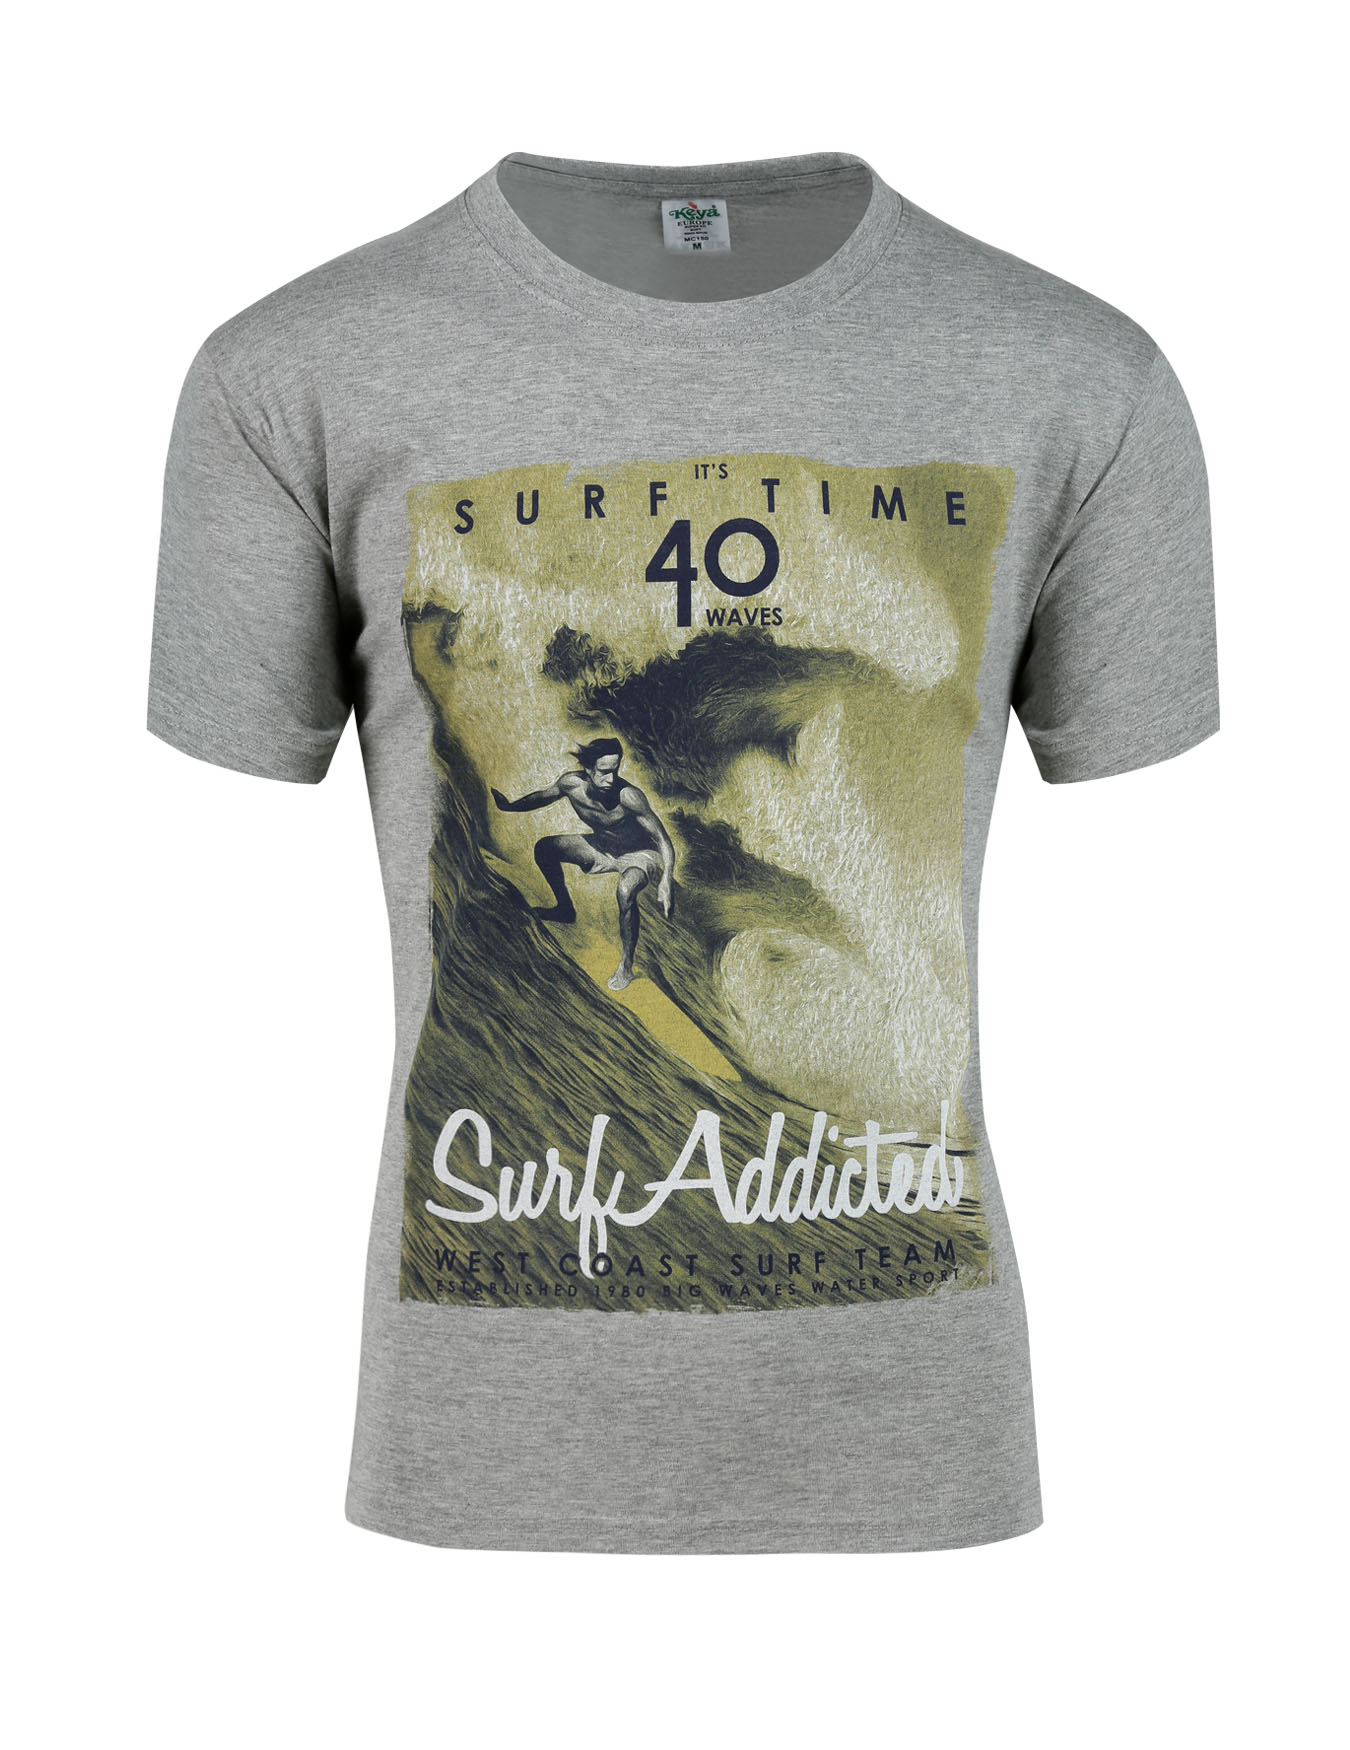 Ανδρικό T-Shirt Surf Time (κωδ. 1652720) - PLAY4TWO - 1652720